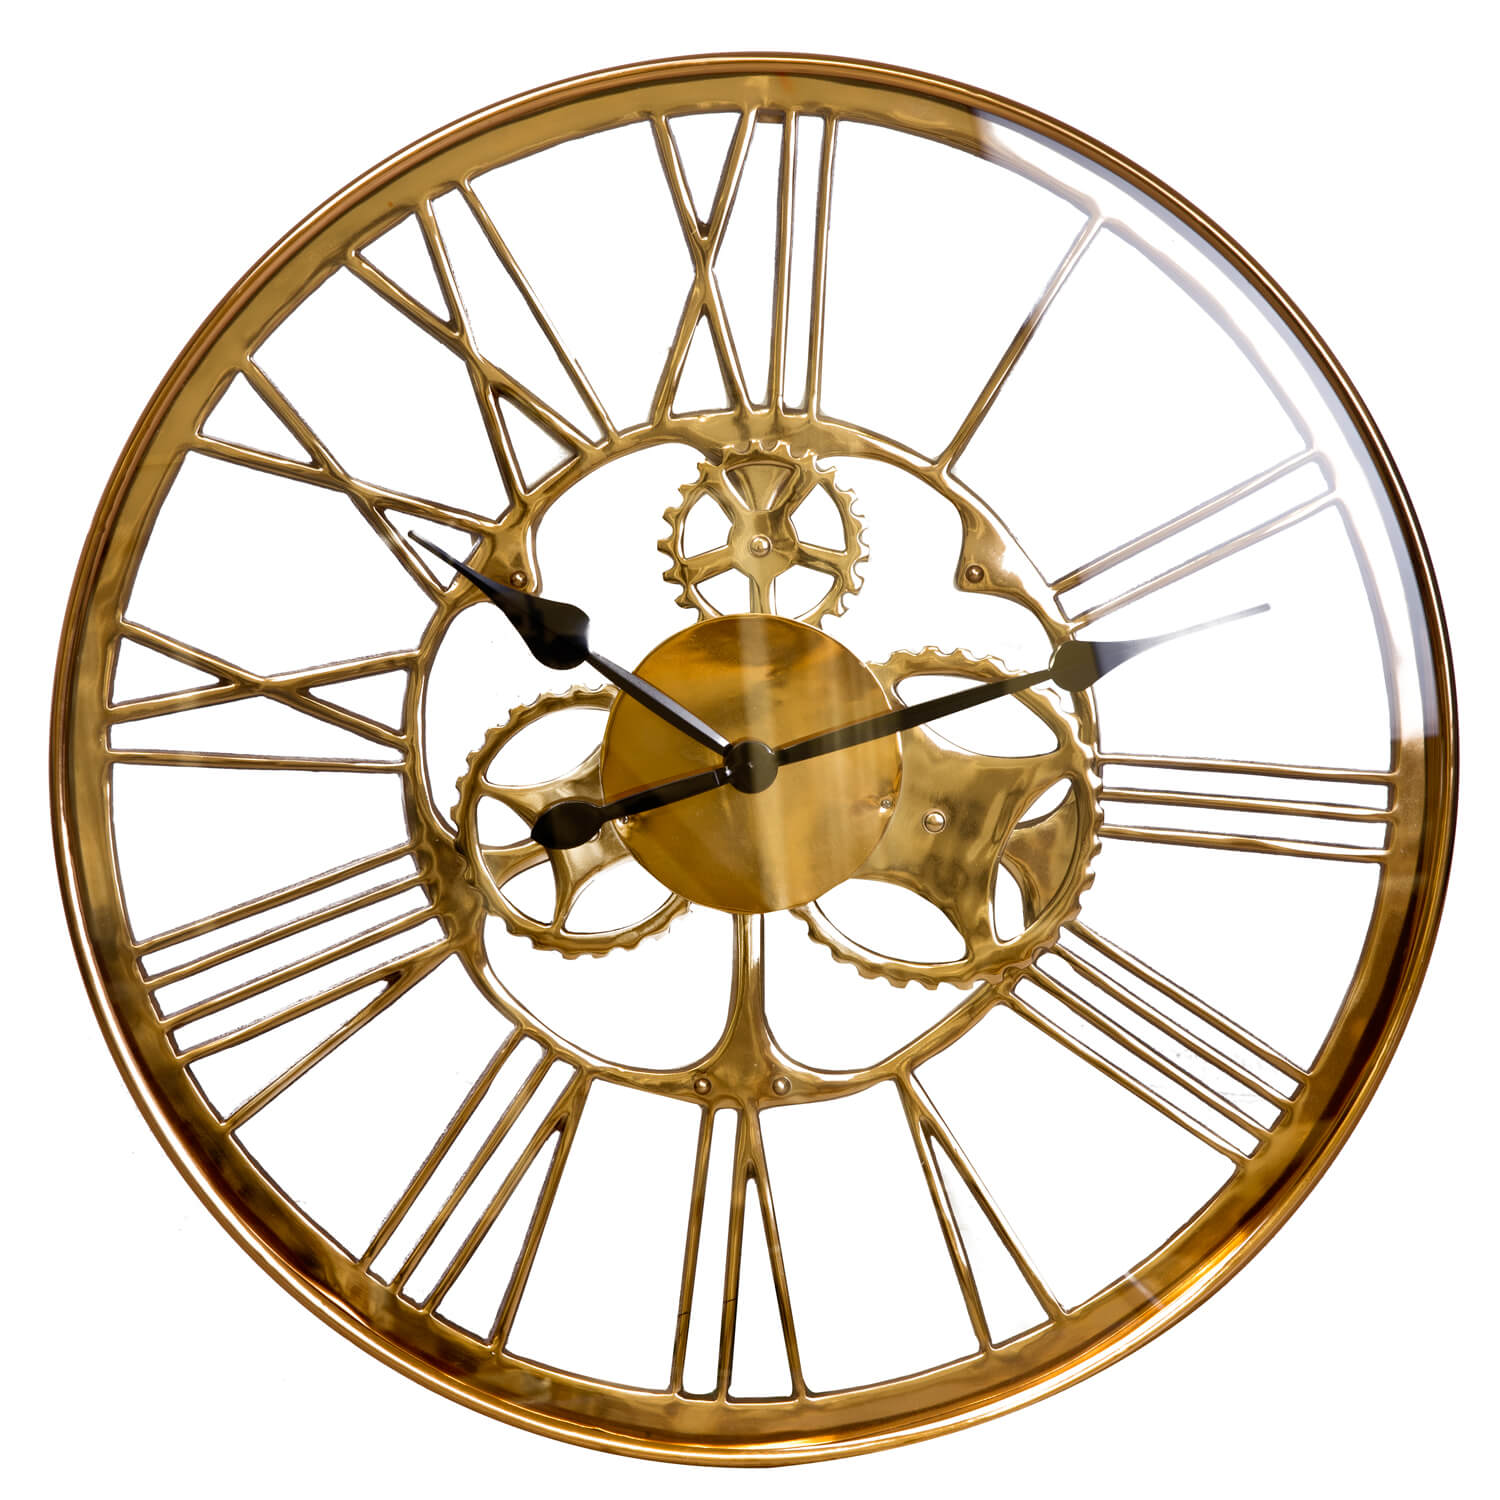 Image of Casa Artistic Gears Clock, Rose Gold